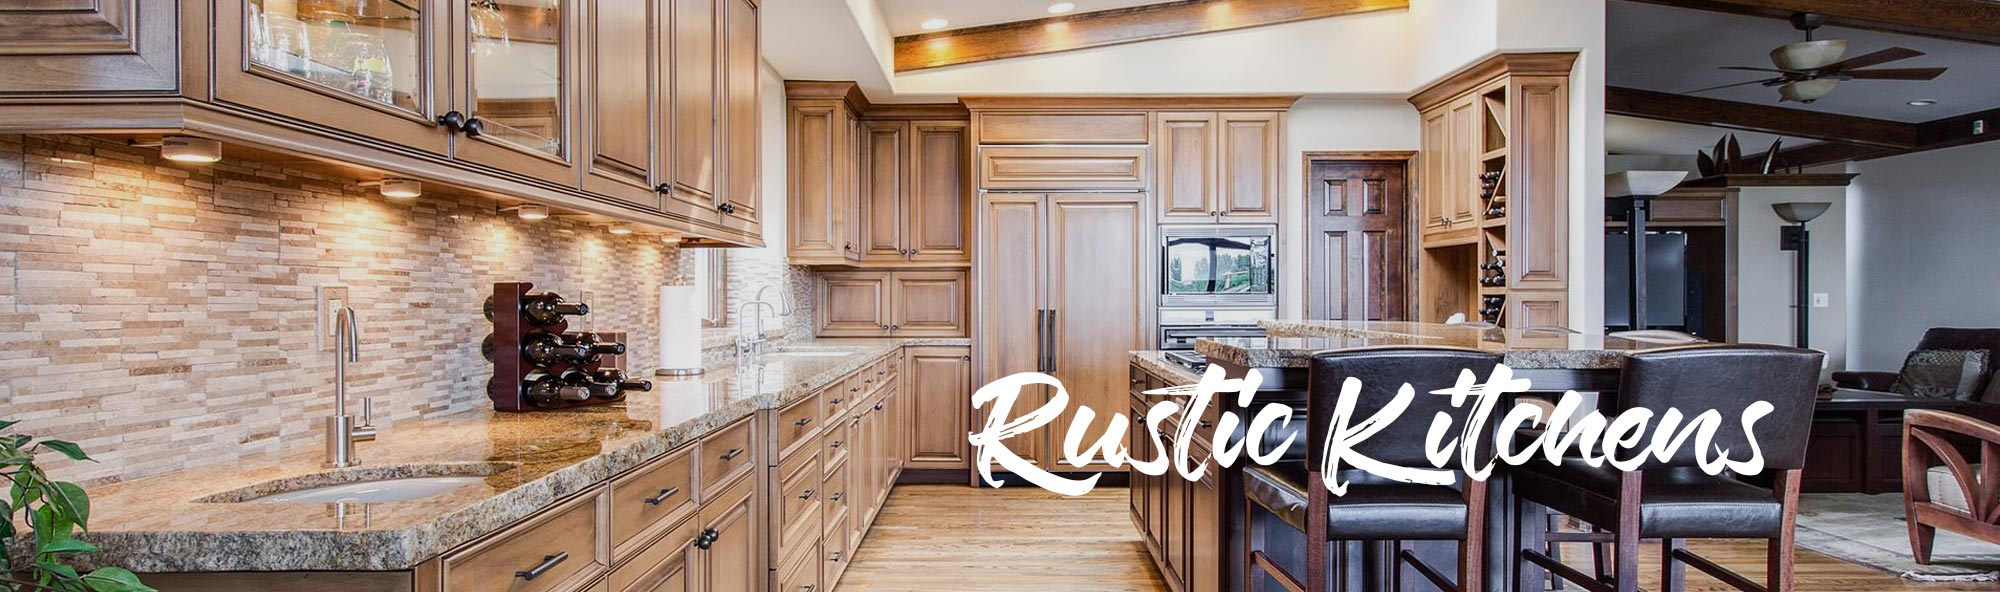 Rustic kitchen renovations auckland superior renovations auckland rustic kitchen renovation rustic kitchens kitchen renovation bathroom renovation auckland solutioingenieria Gallery